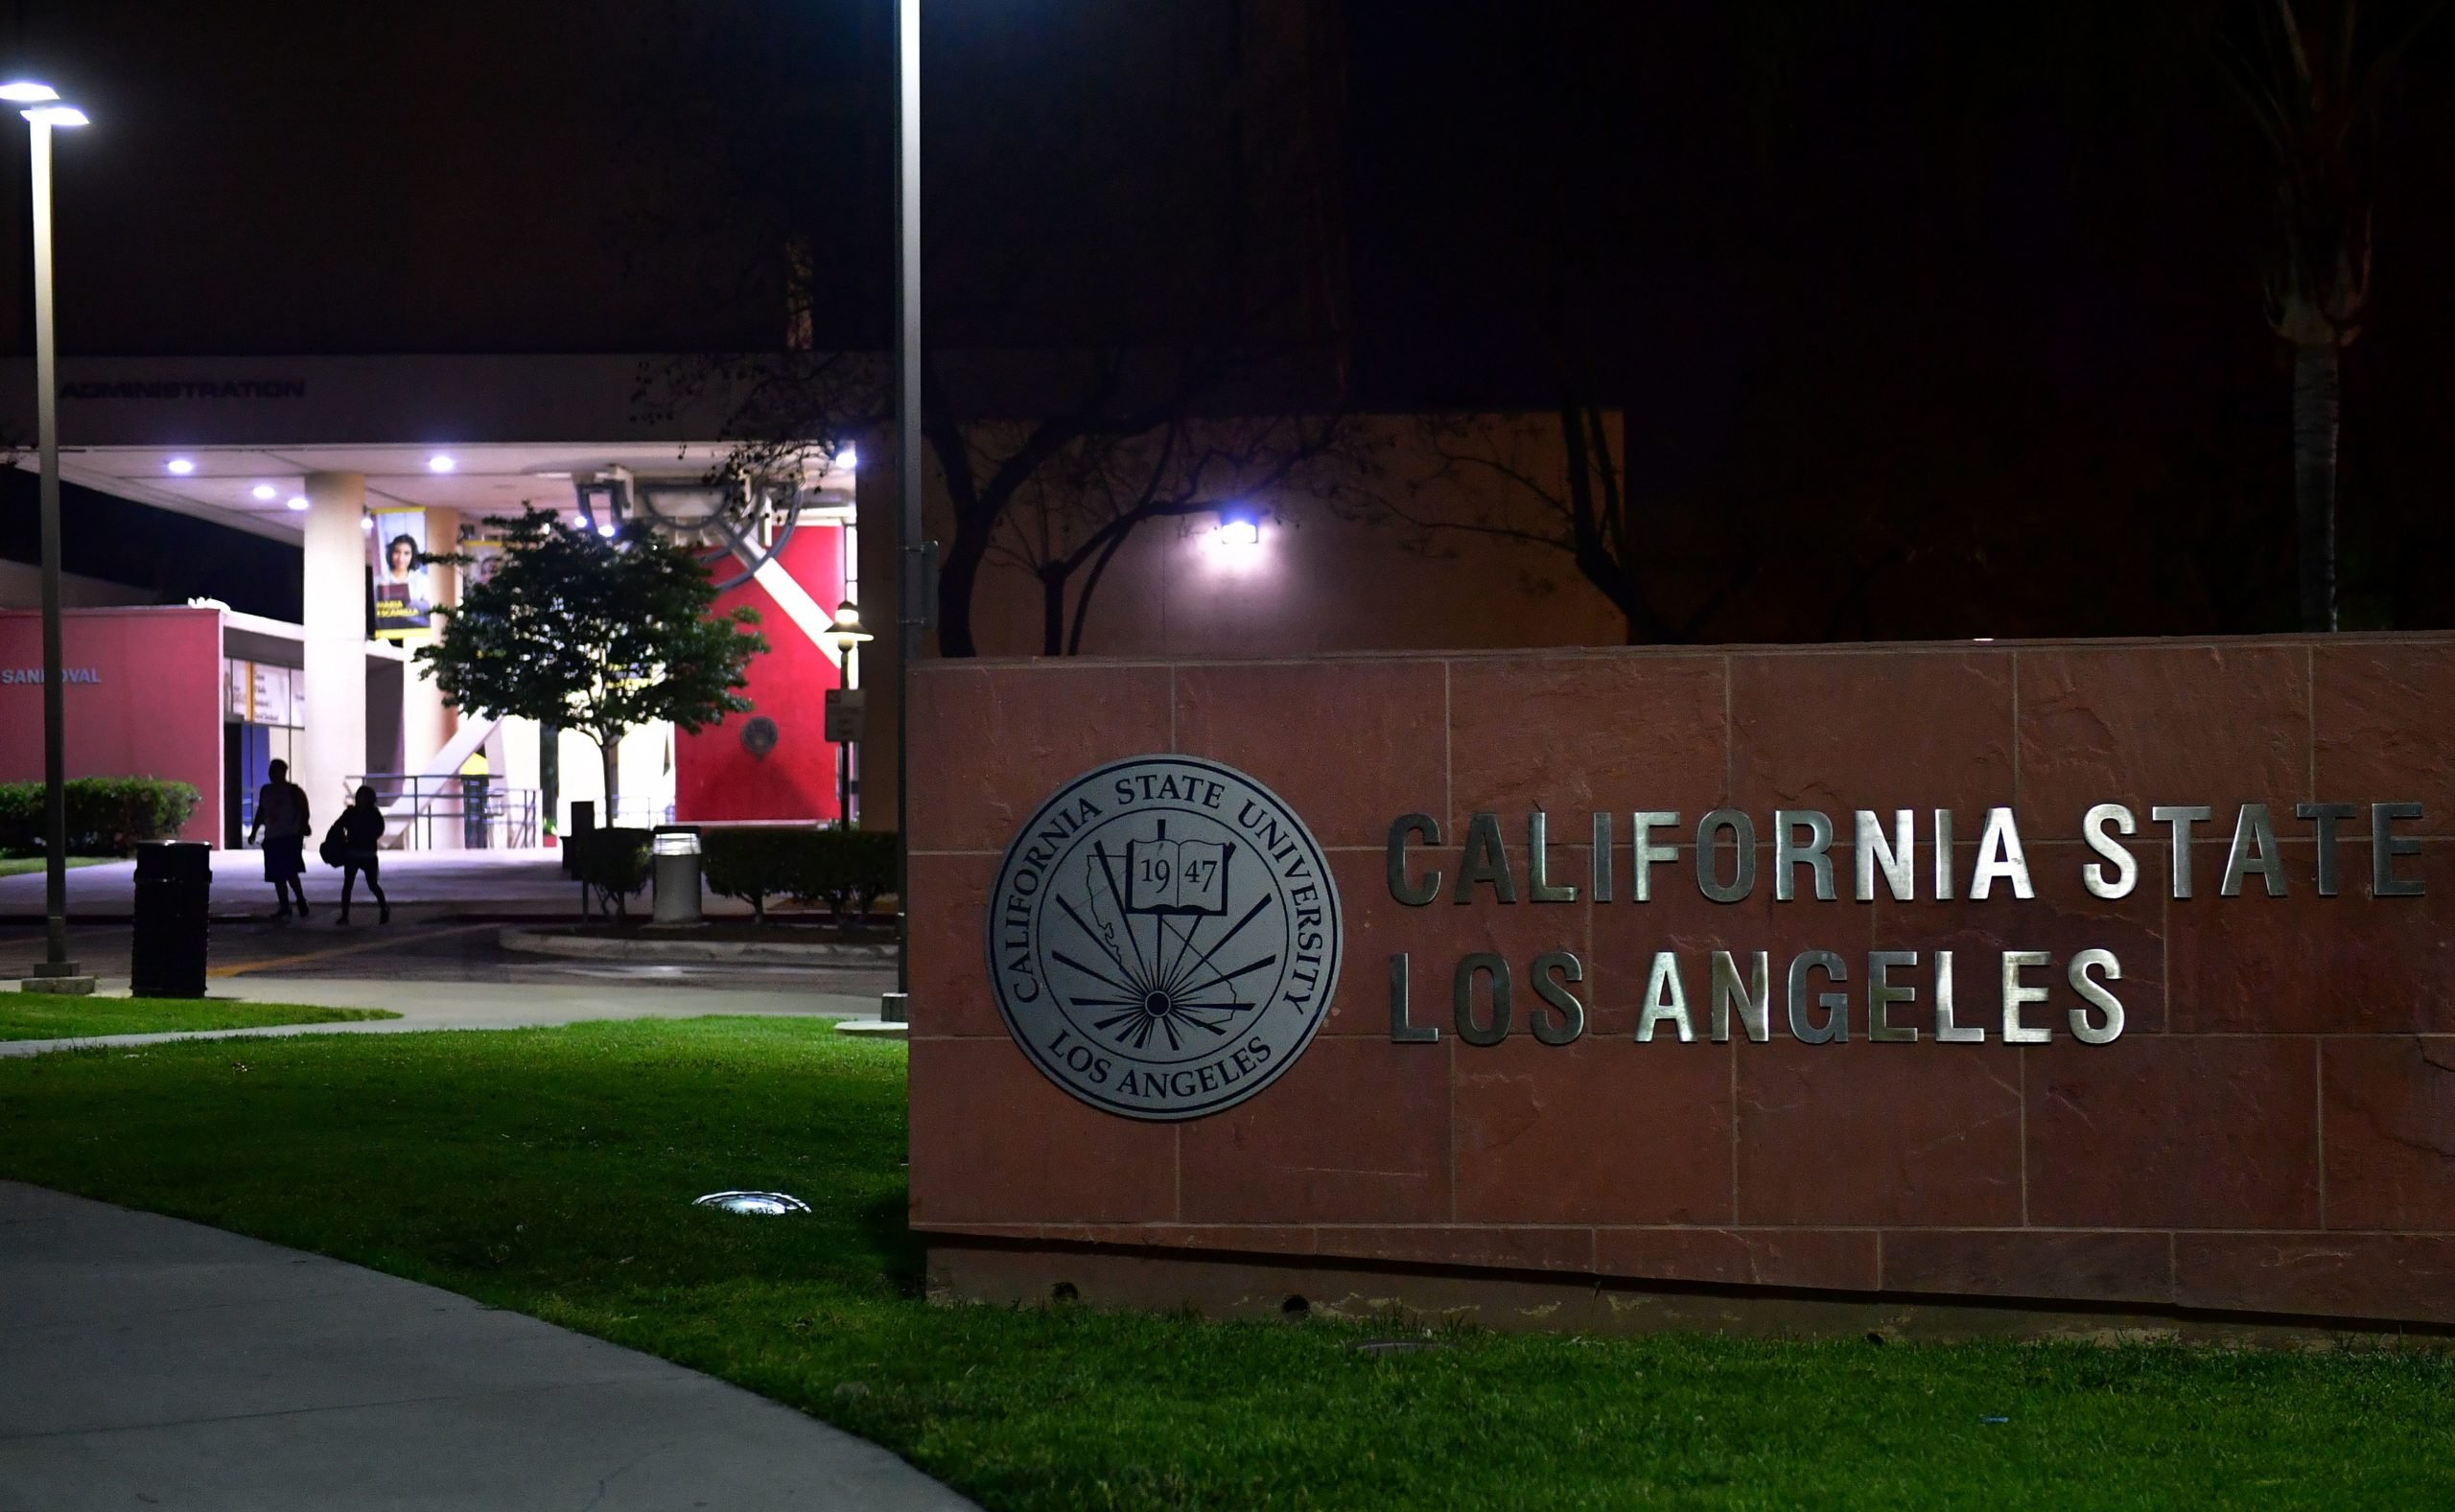 The California State Los Angeles university campus is pictured during a measles quarantine that was issued for staff and students on April 25, 2019 in Los Angeles, California. - Dozens of people at two California universities have been quarantined as US health officials battle to stop the spread of a nationwide measles outbreak, authorities said April 25. The Department of Public Health said hundreds of students and staff at the University of California Los Angeles (UCLA) and California State University (Cal State) had been exposed to a measles carrier earlier this month. Those who couldn't prove they had been inoculated had been quarantined, it said. (Photo by Frederic J. BROWN / AFP) (Photo credit should read FREDERIC J. BROWN/AFP via Getty Images)